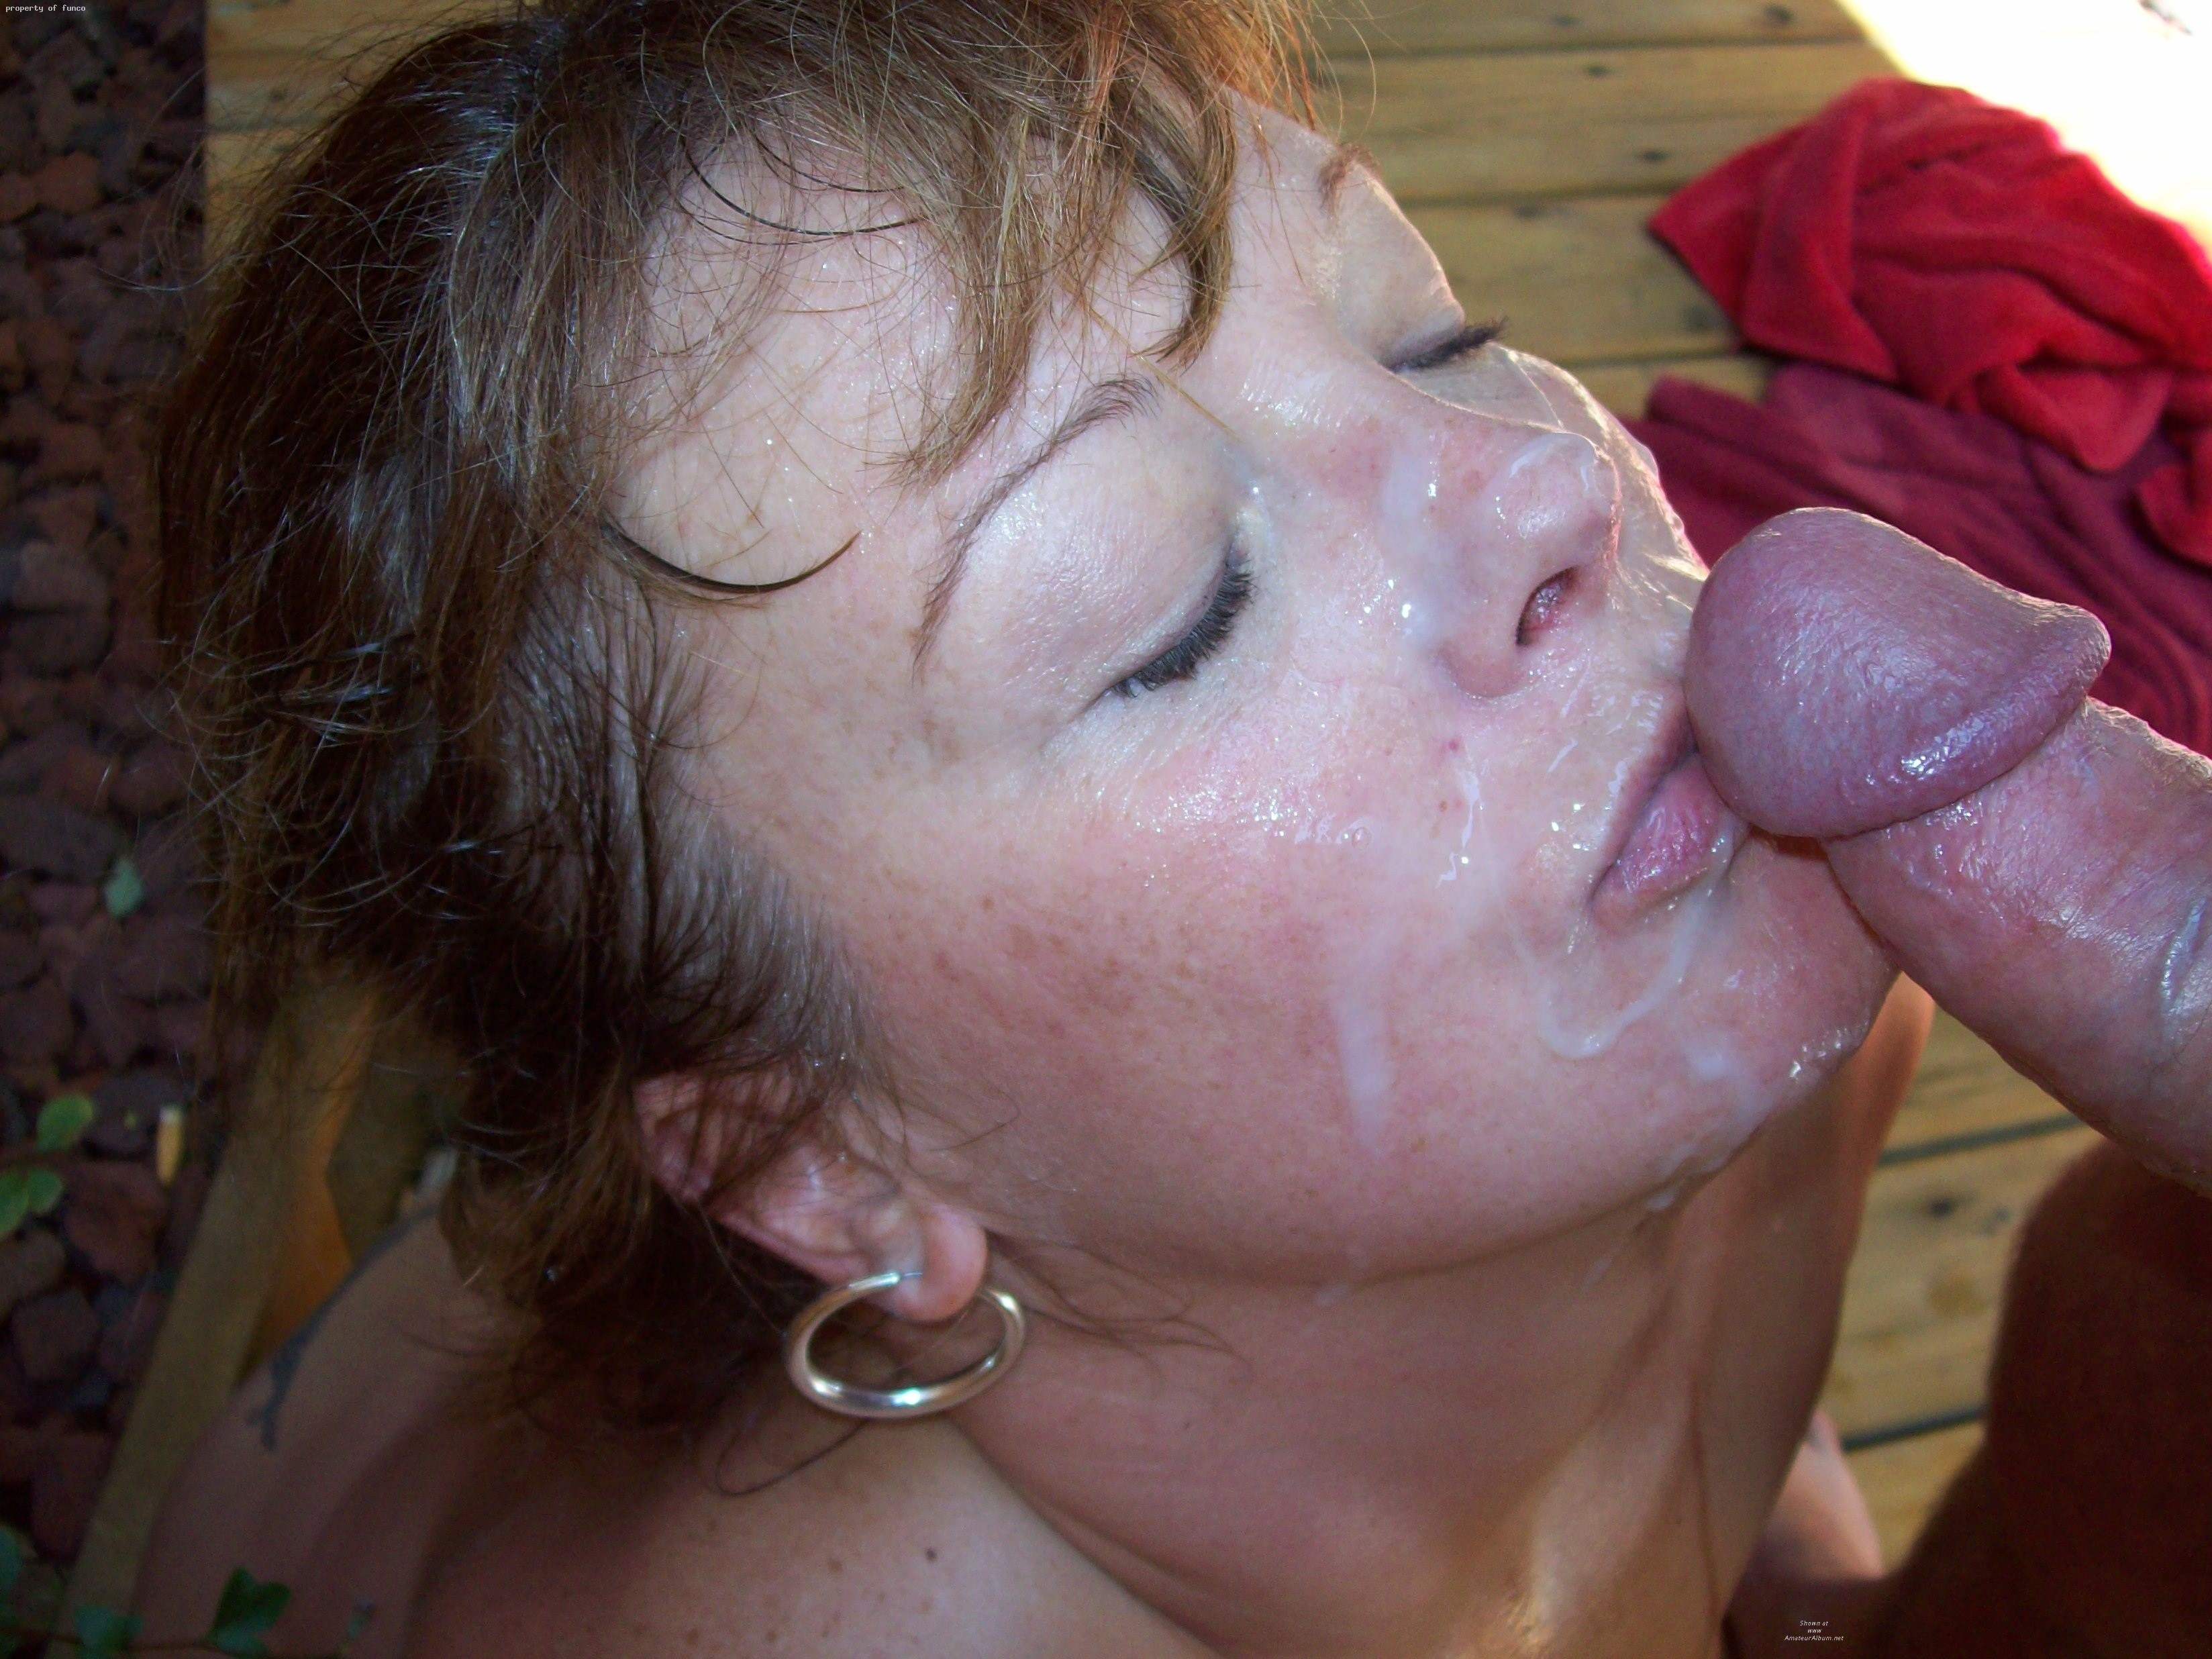 Creampie and facial for rachel james on your date 1